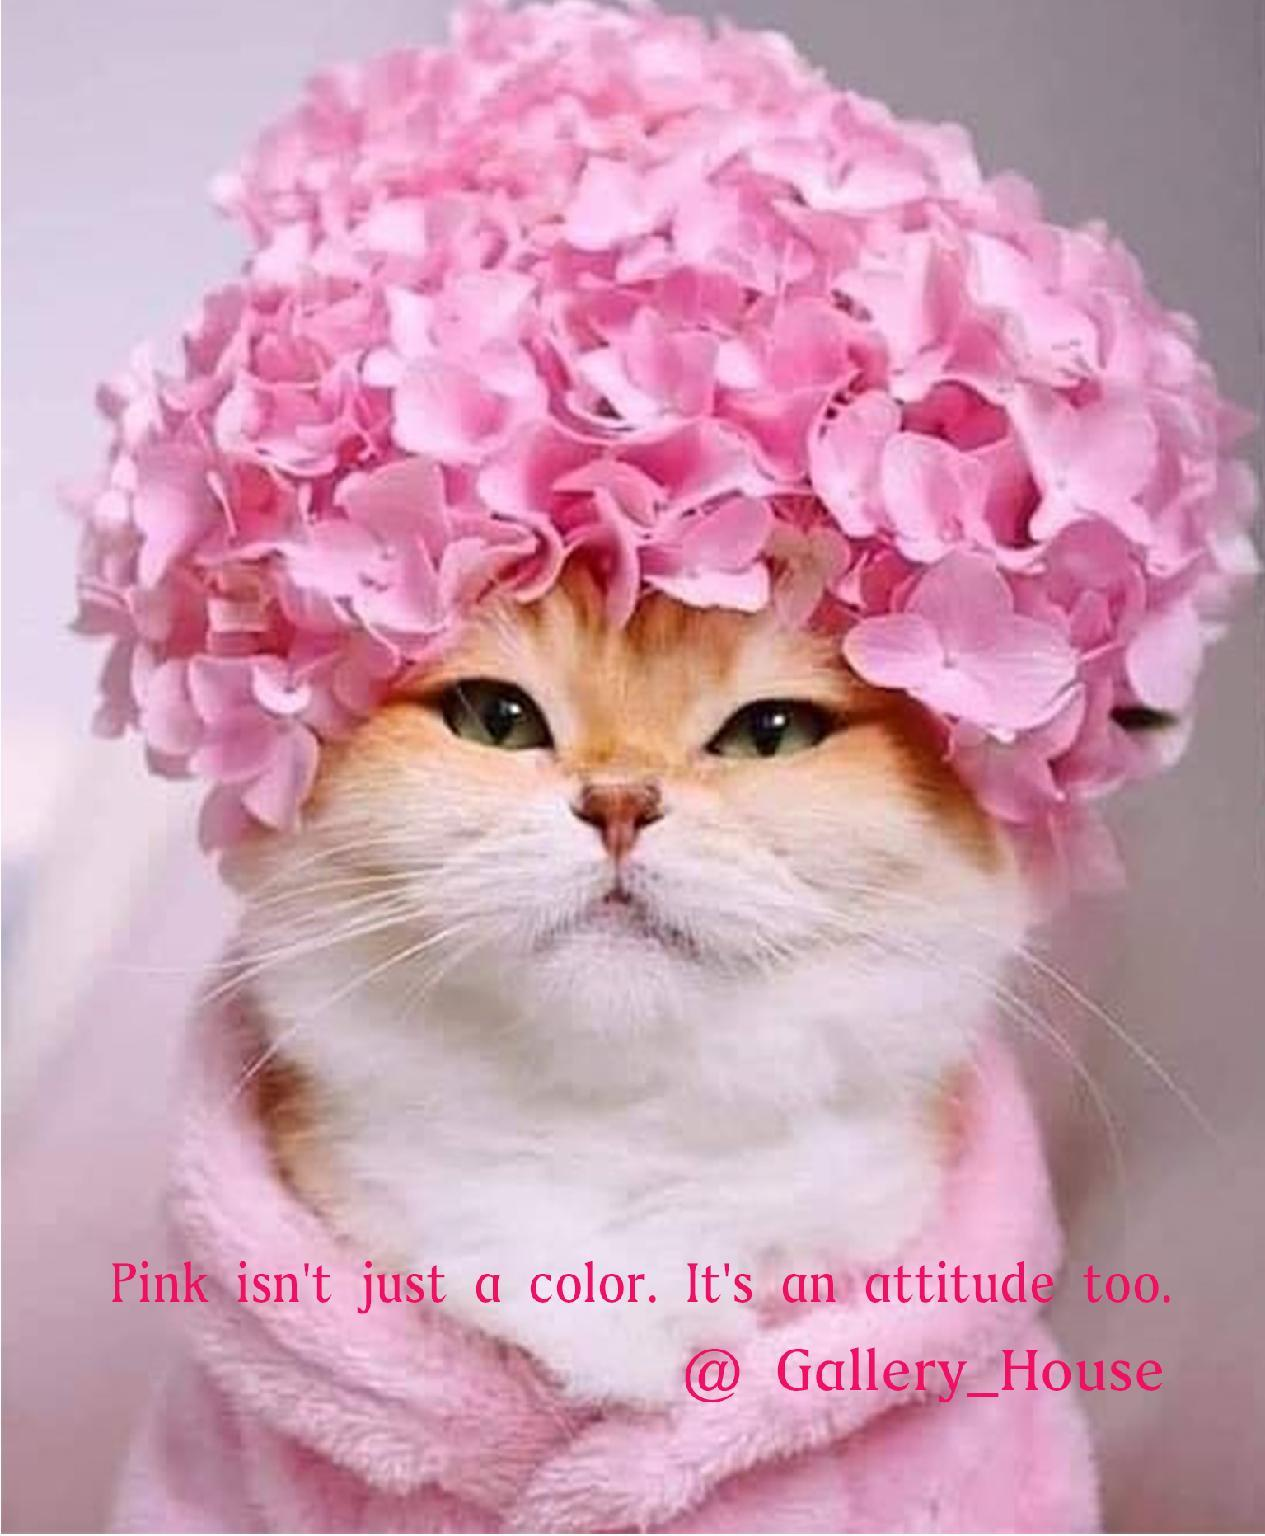 Pink isn't just a color. It's an attitude too.